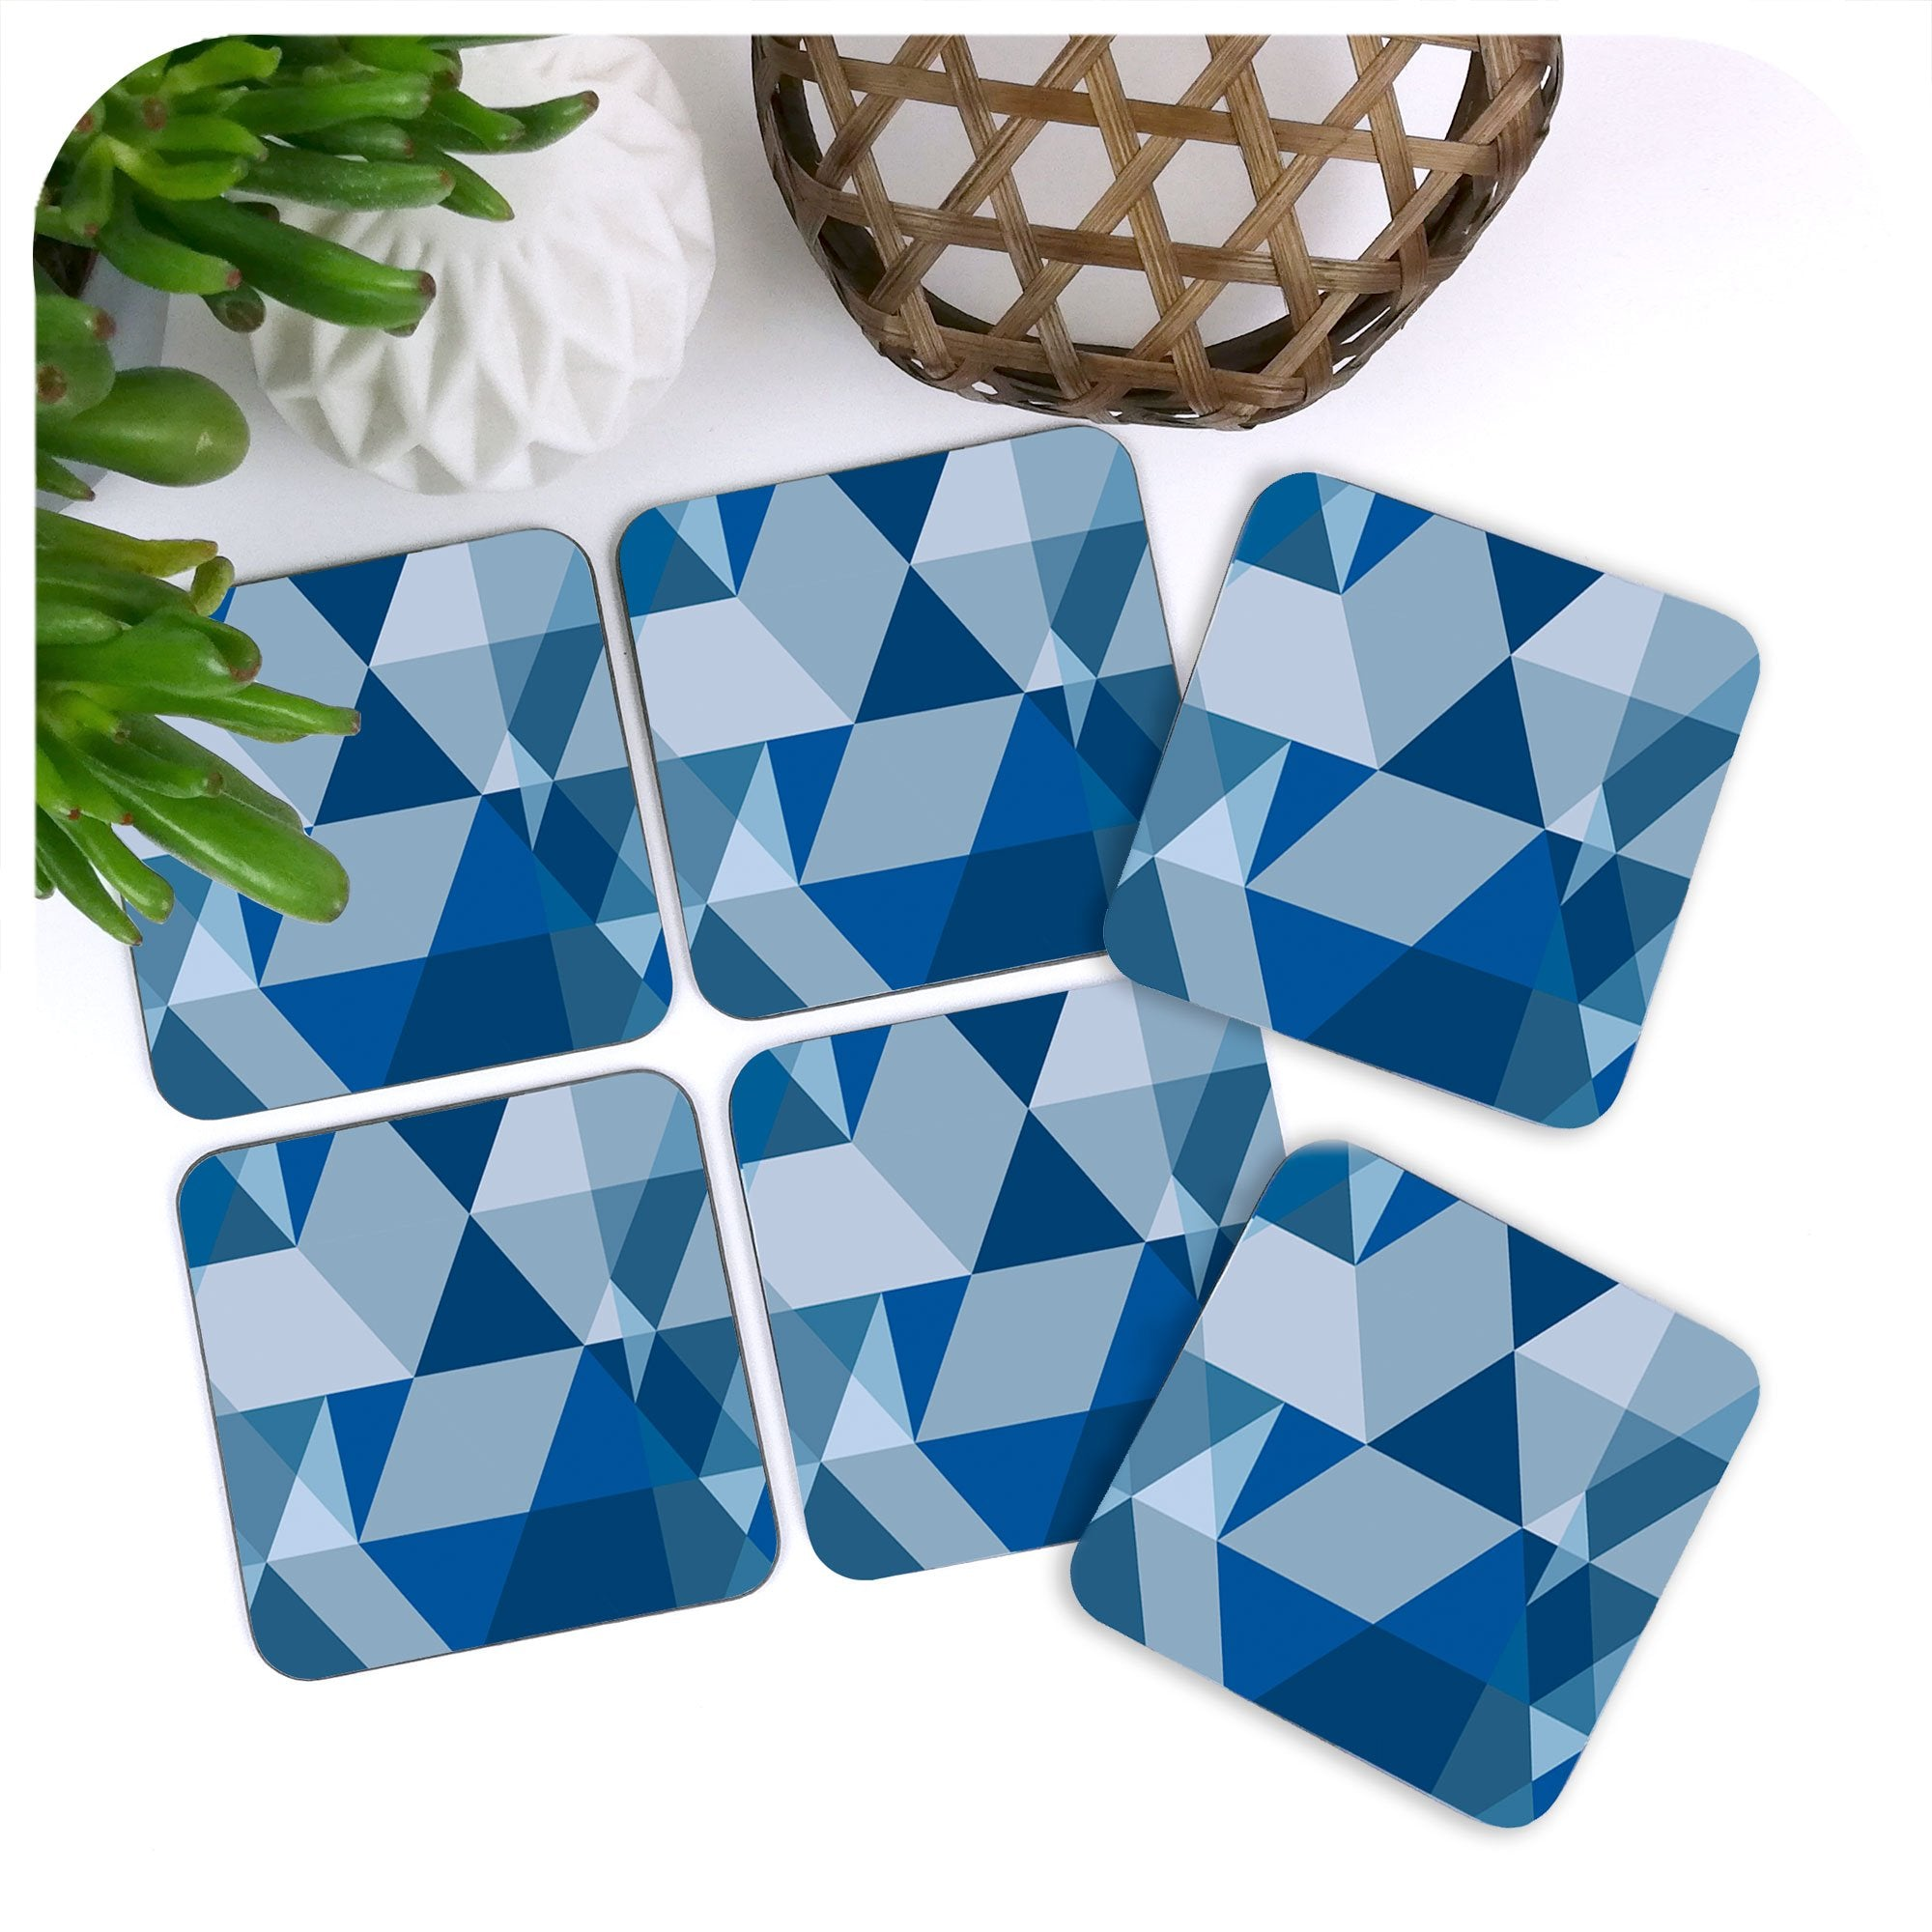 Scandi Geometric Coasters in Blue, set of 6 scattered on a table | The Inkabilly Emporium